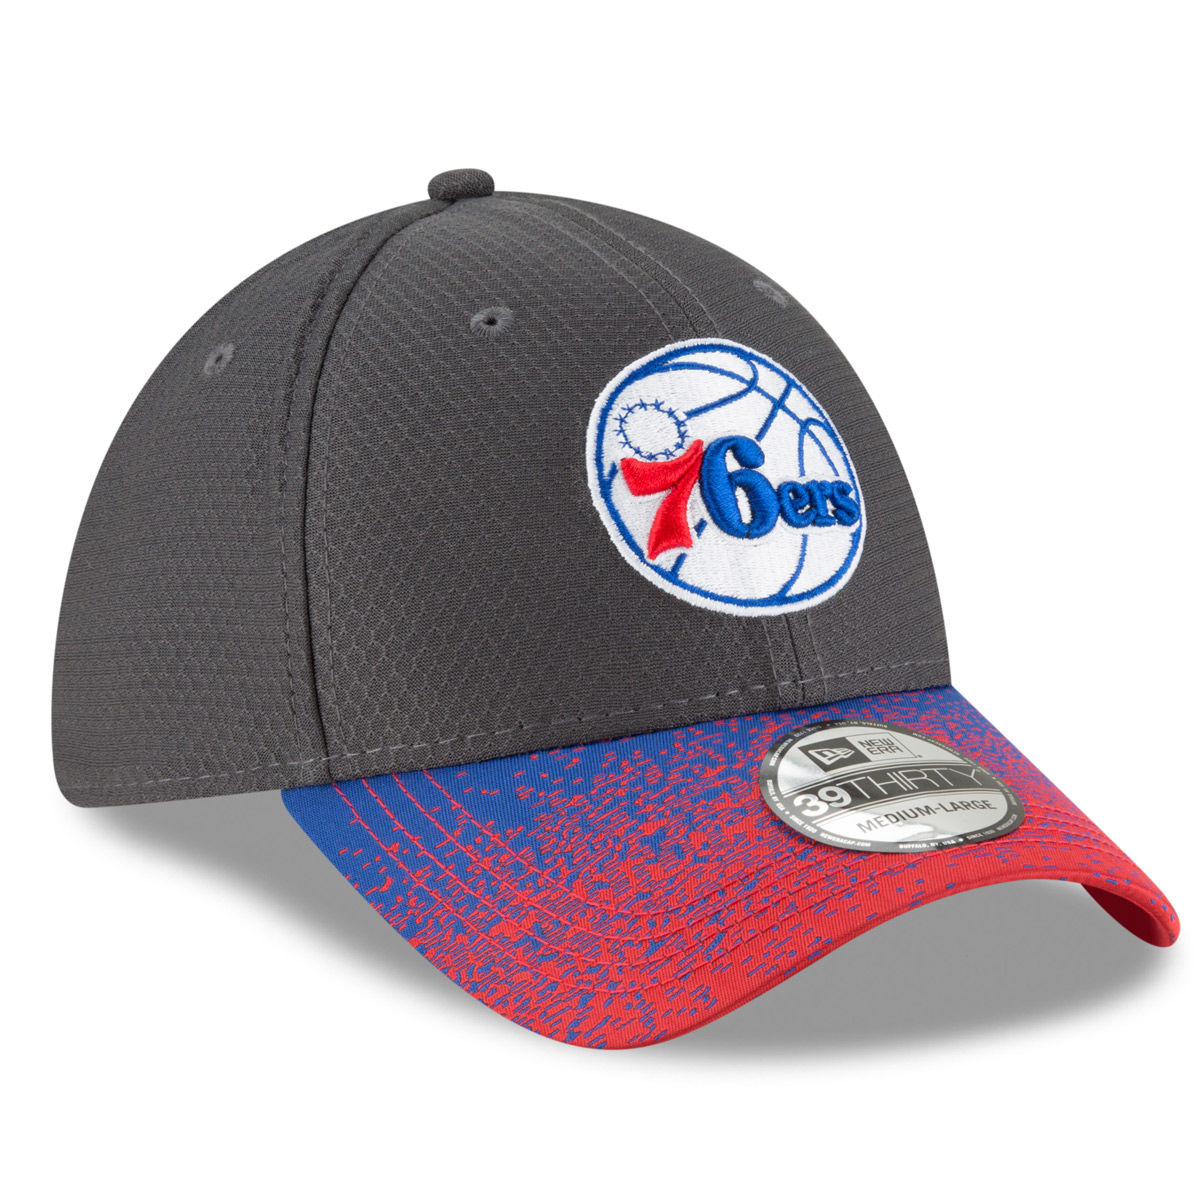 Philadelphia 76ers Adult 2018 39THIRTY Hat